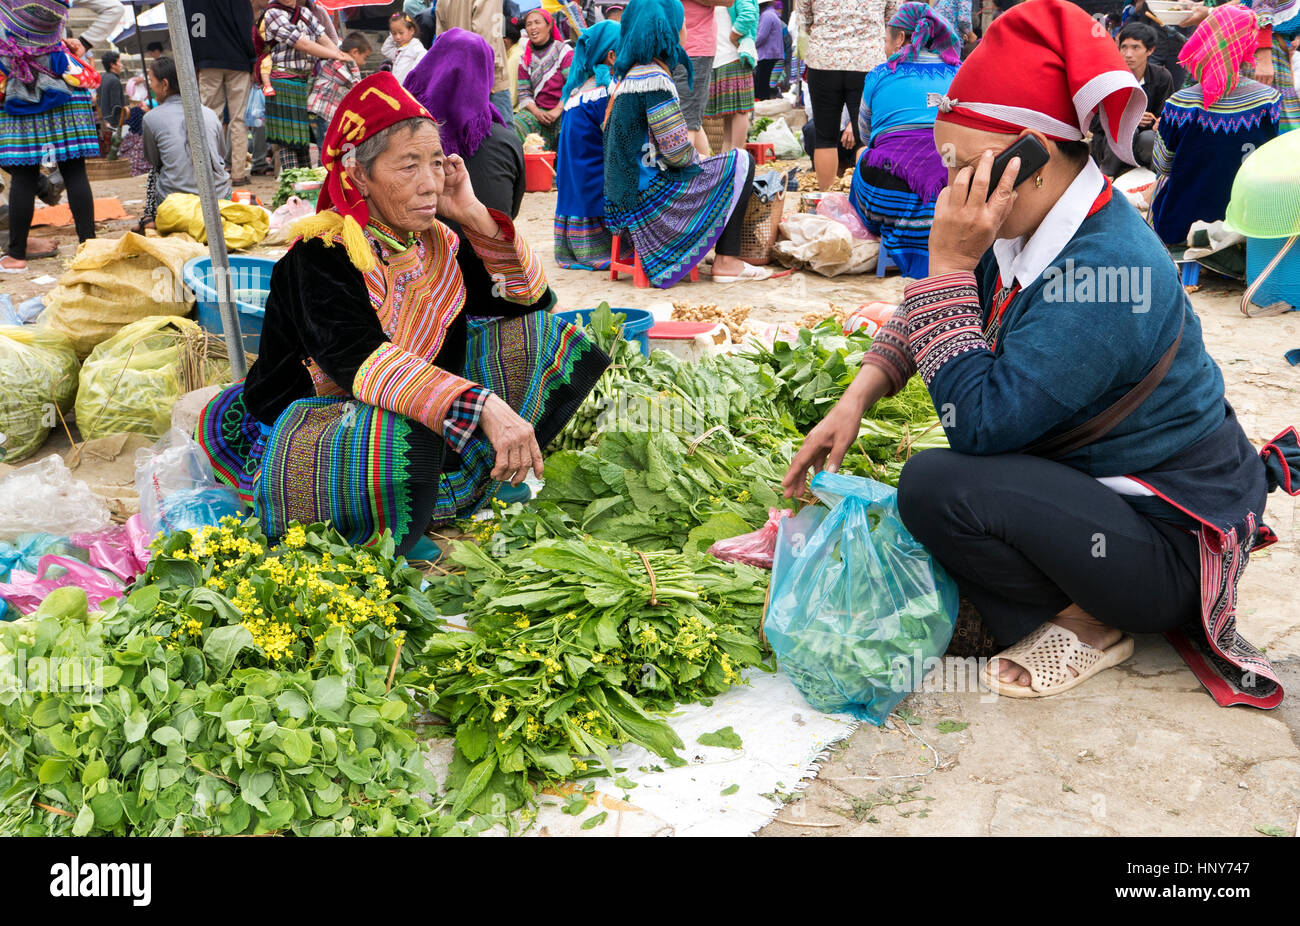 Hmong woman selling her home grown green leafy vegetables,  farmers market, customer using her cell phone,  native - Stock Image